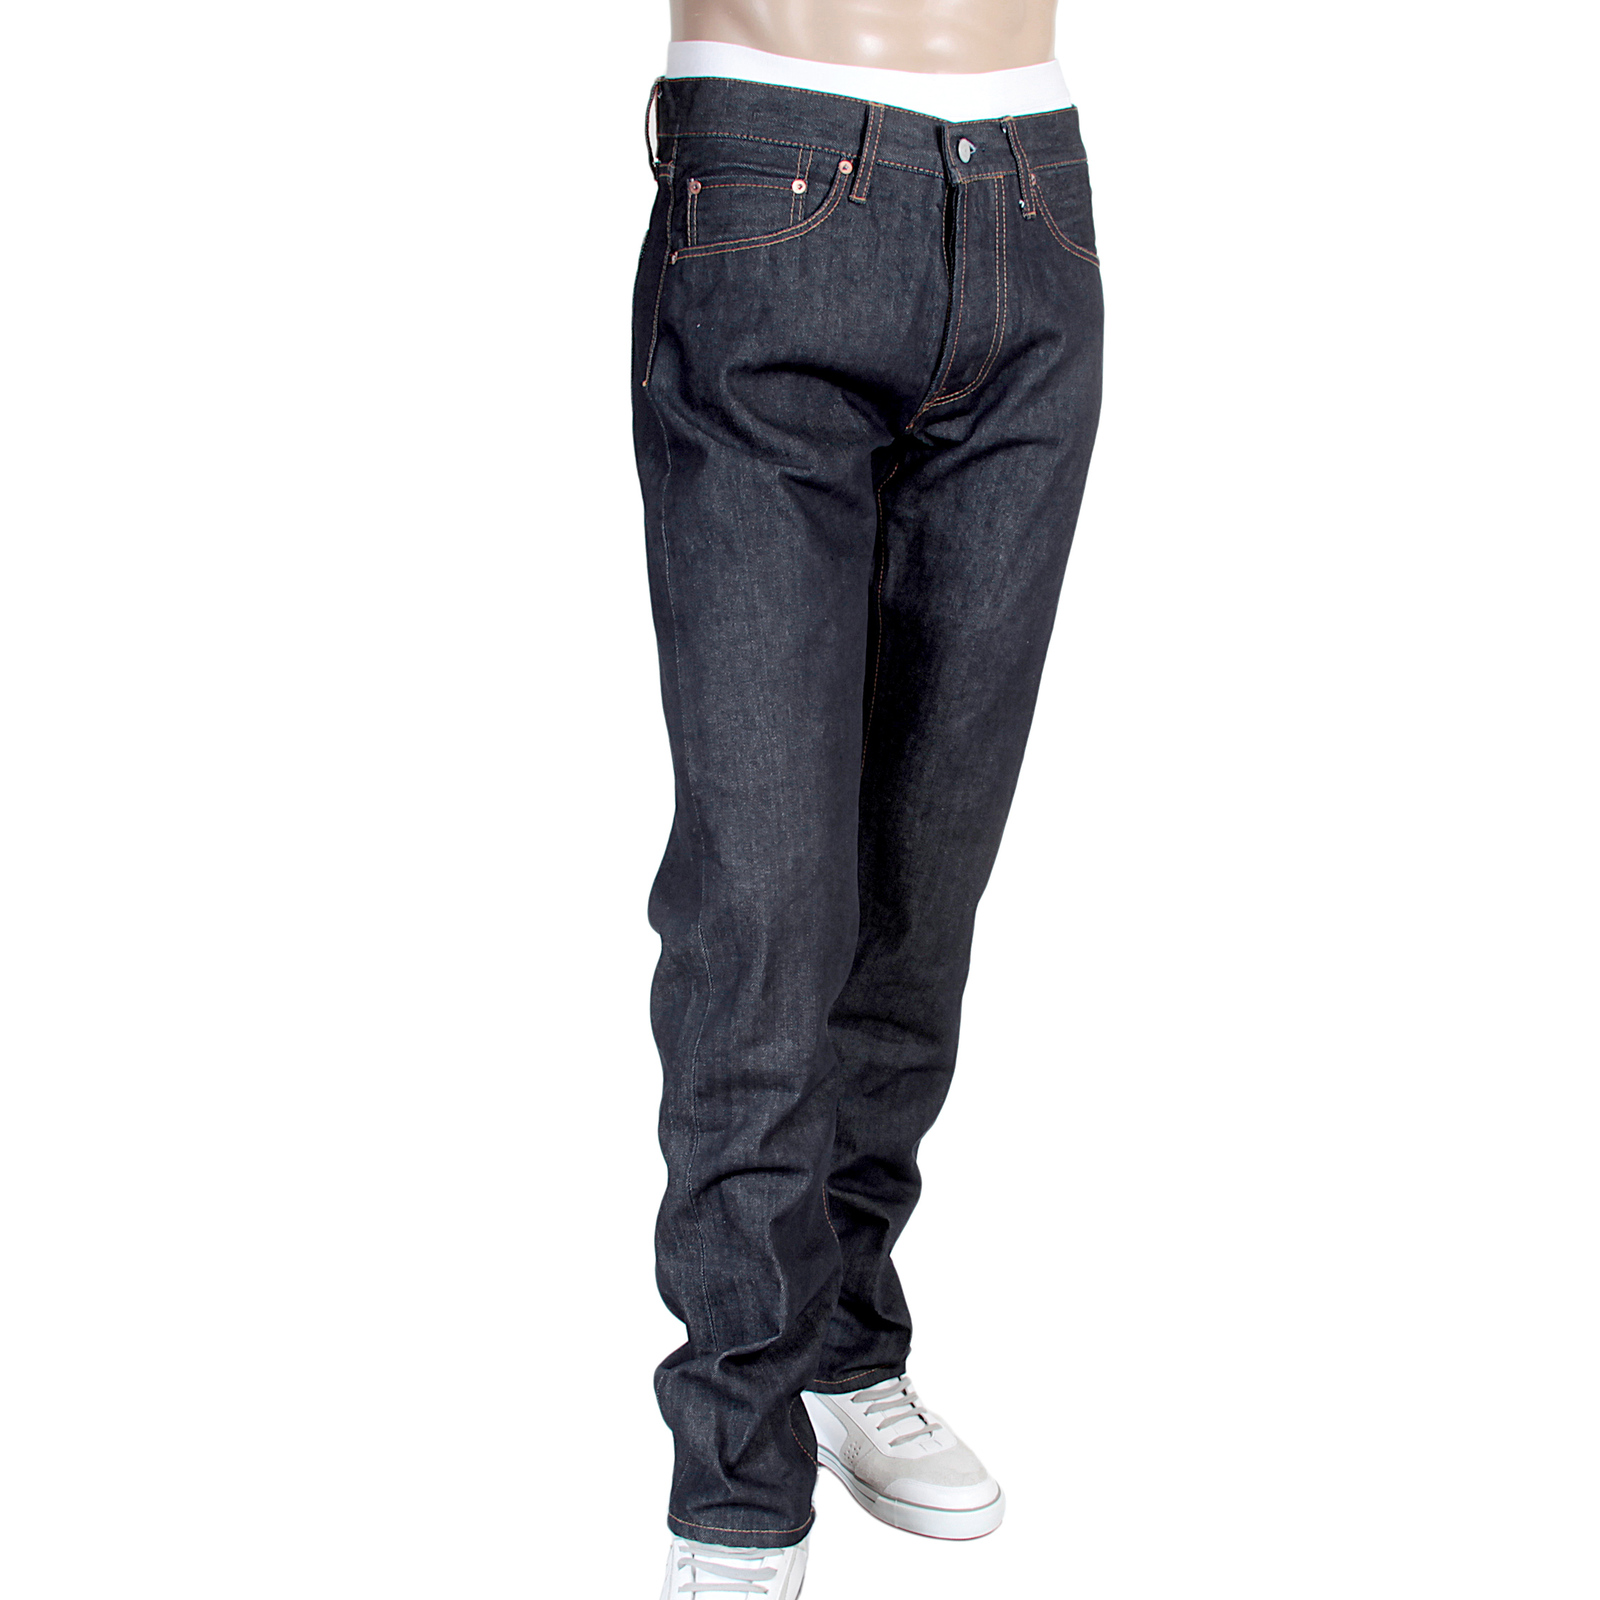 Shop For Original Cats Paw One Wash Jeans At Togged Now